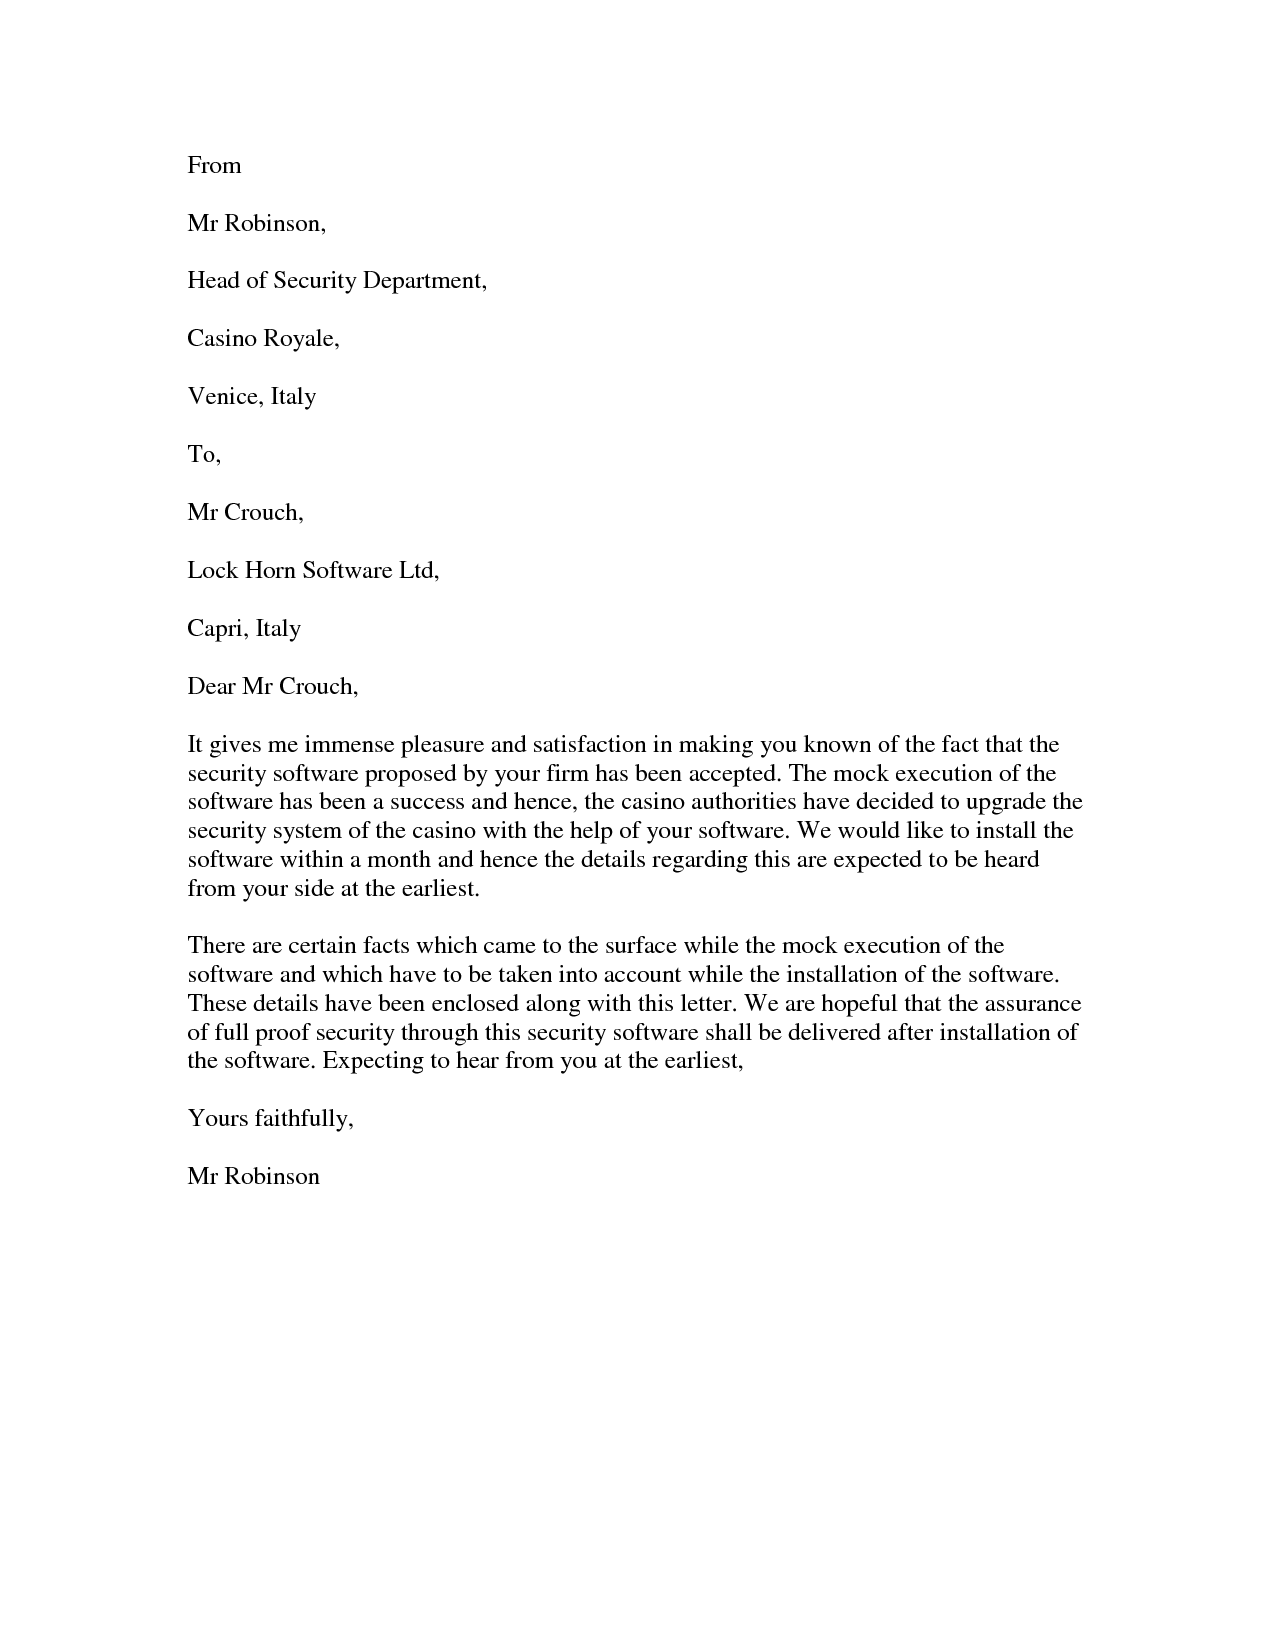 interview acceptance letter example of a letter sent via email software acceptance letter to ensure a mistake letter of acceptance use trustworthy